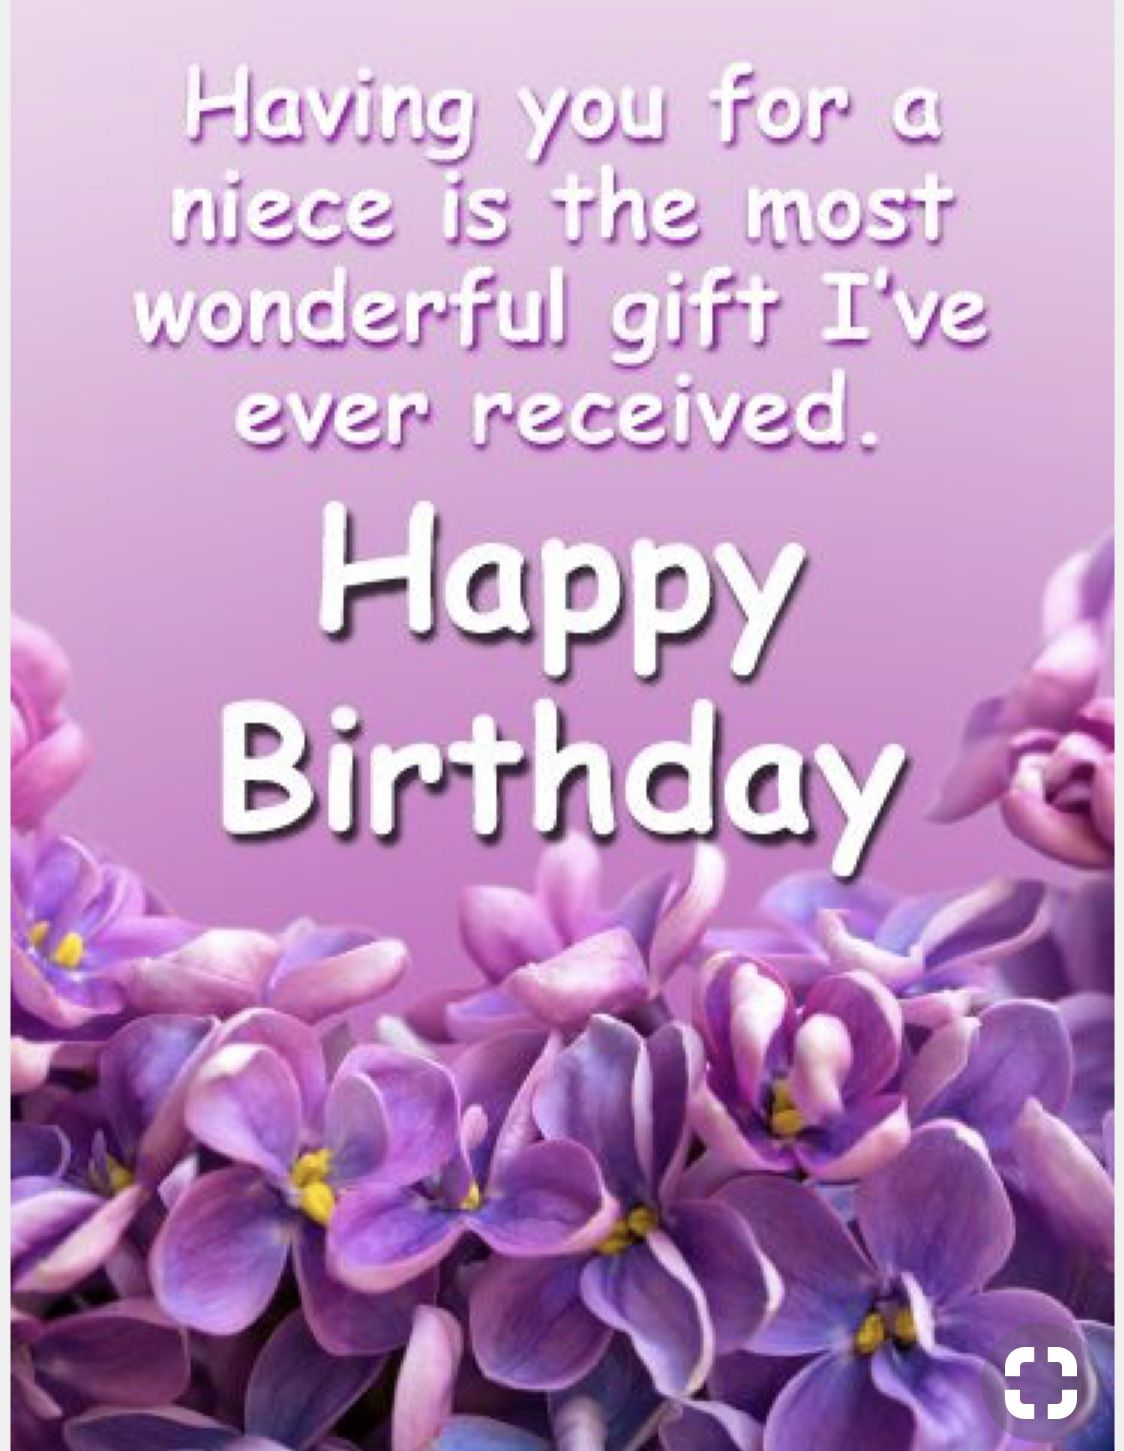 Pin By Lena Ch On Niece Bday In 2020 Birthday Cards For Niece Niece Birthday Wishes Happy Birthday Niece